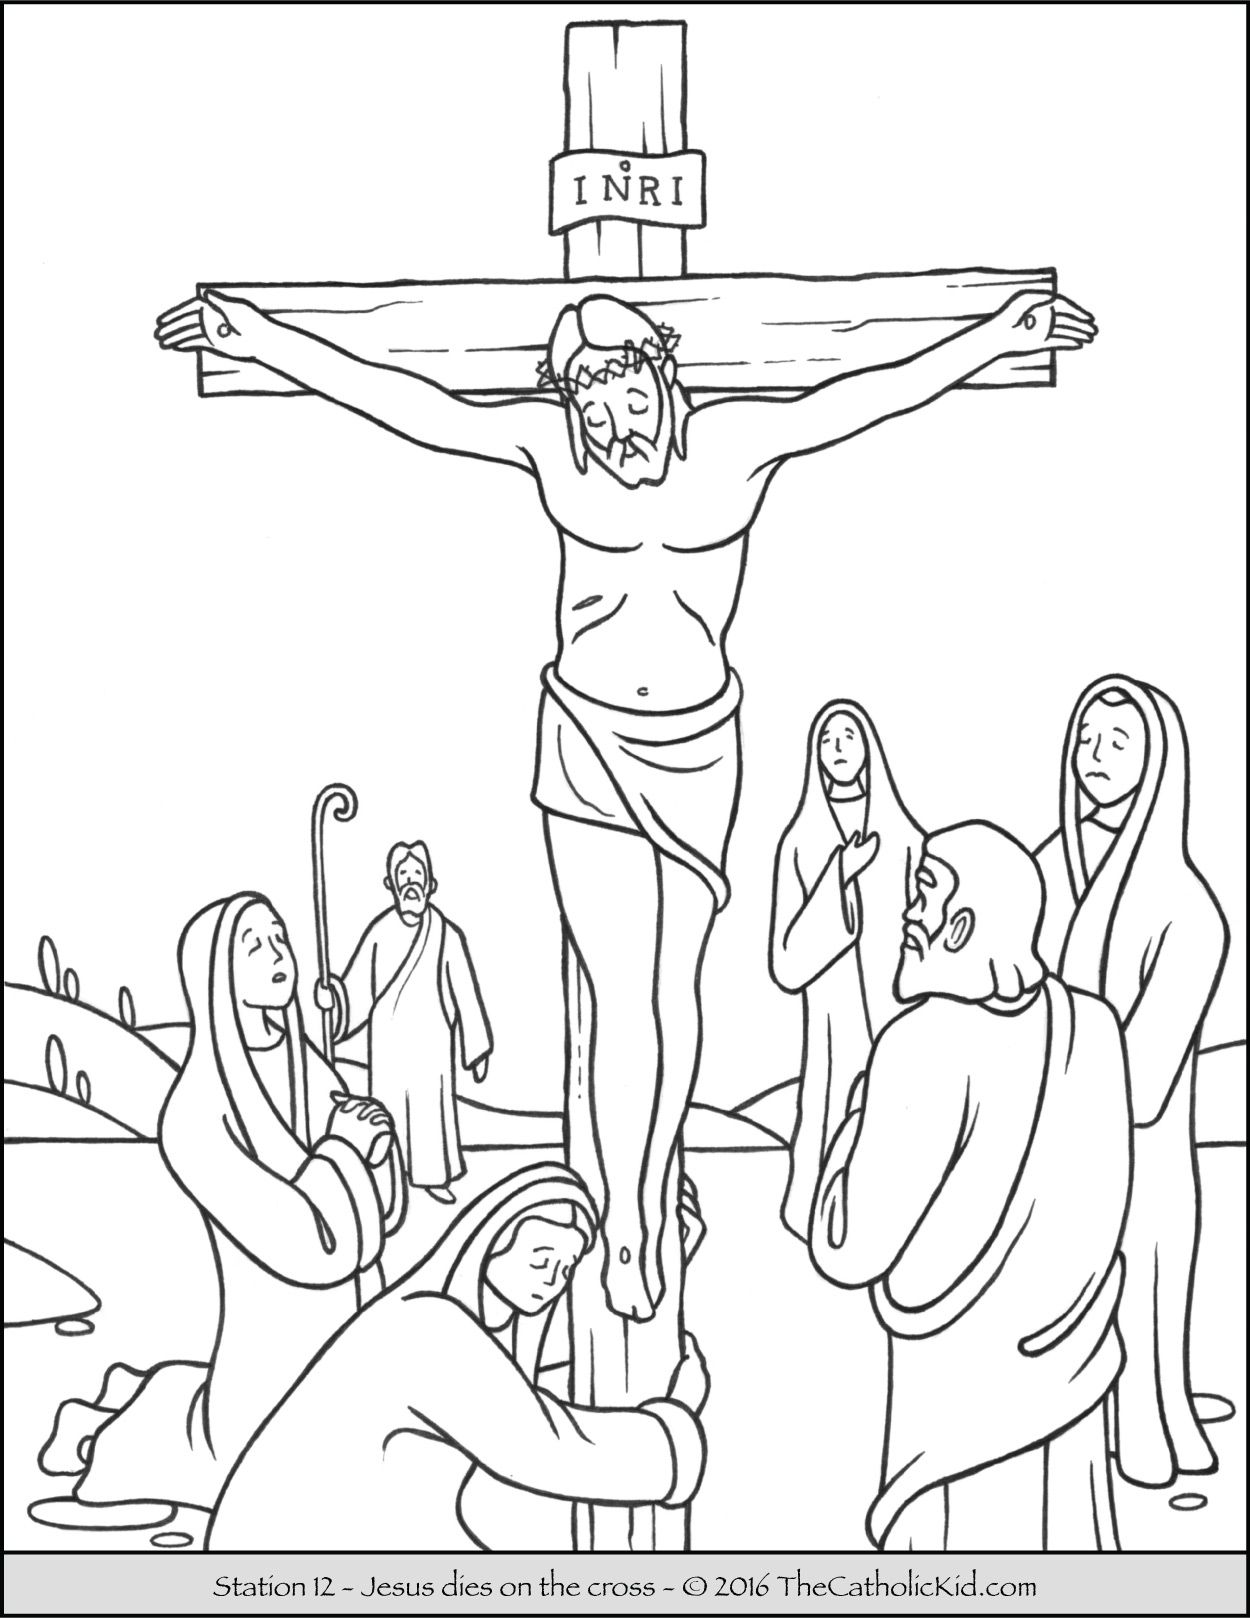 Stations Of The Cross Coloring Pages The Catholic Kid Cross Coloring Page Jesus Coloring Pages Bible Coloring Pages